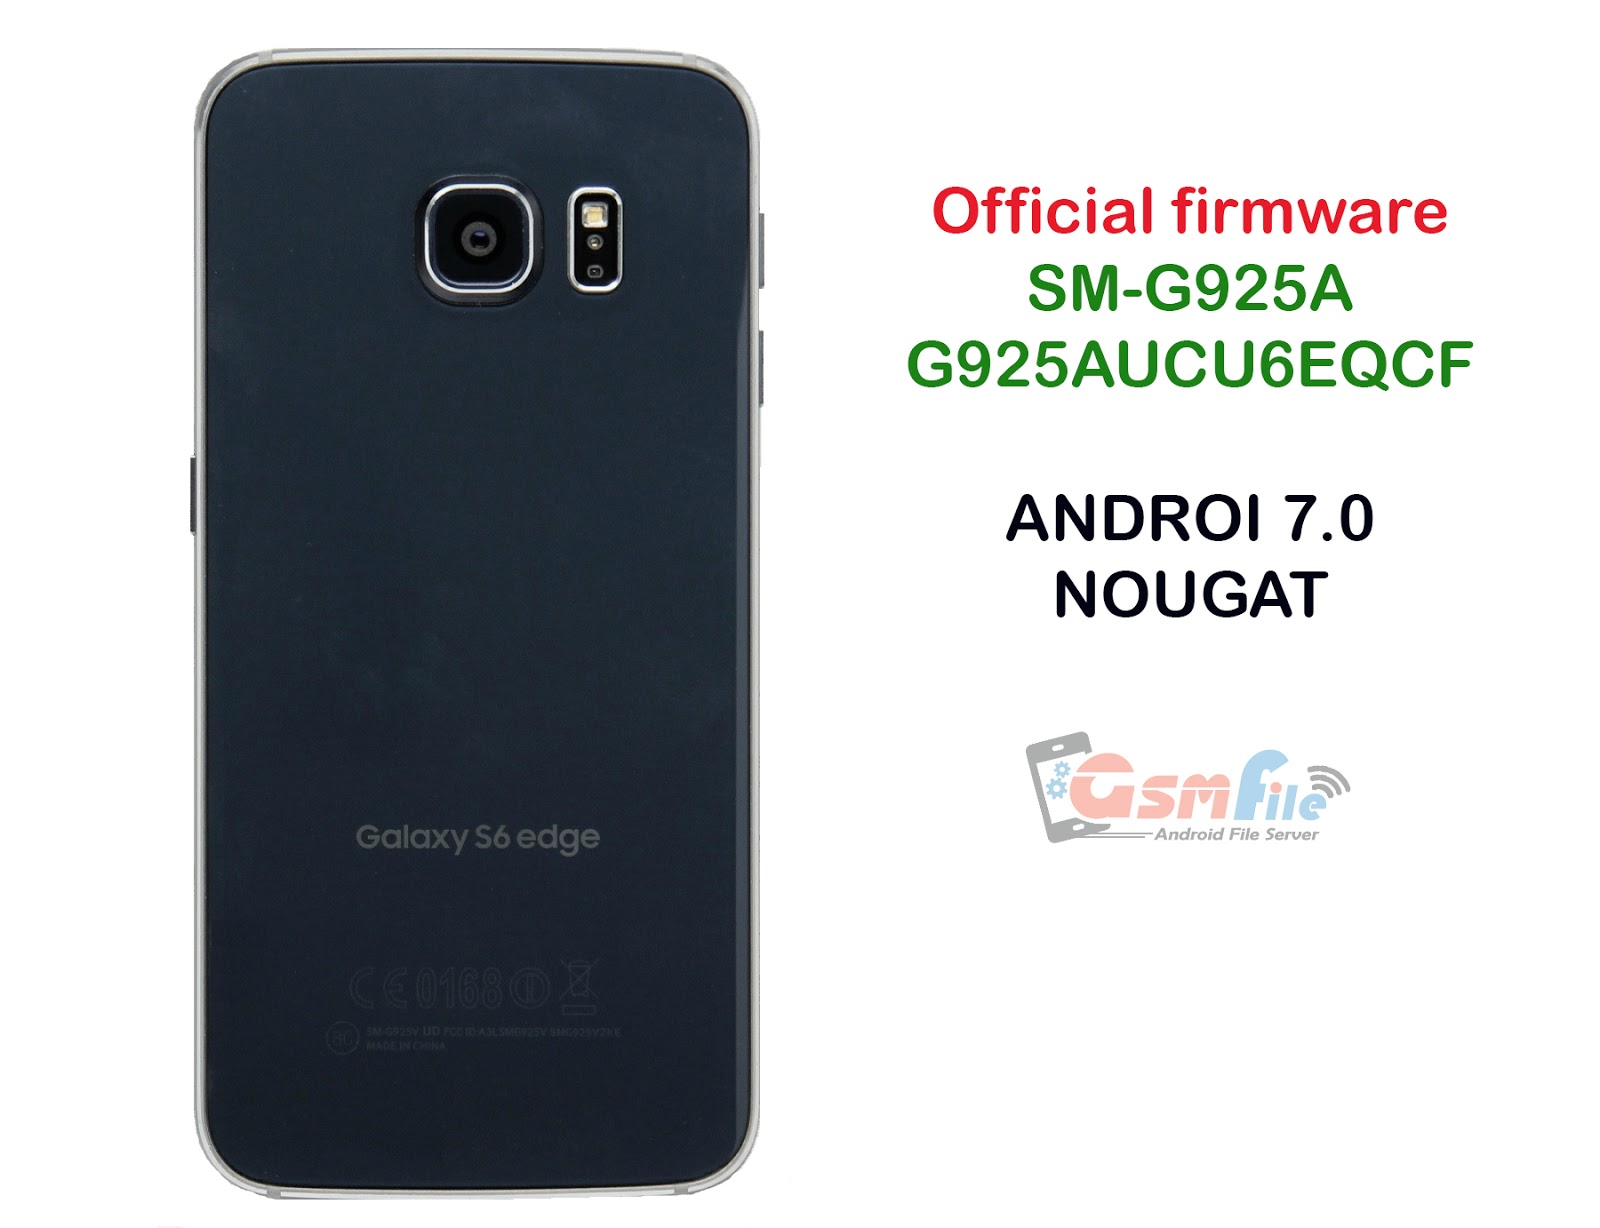 Update Android 7 0 Nougat G920AUCU6EQCF for Galaxy S6 and